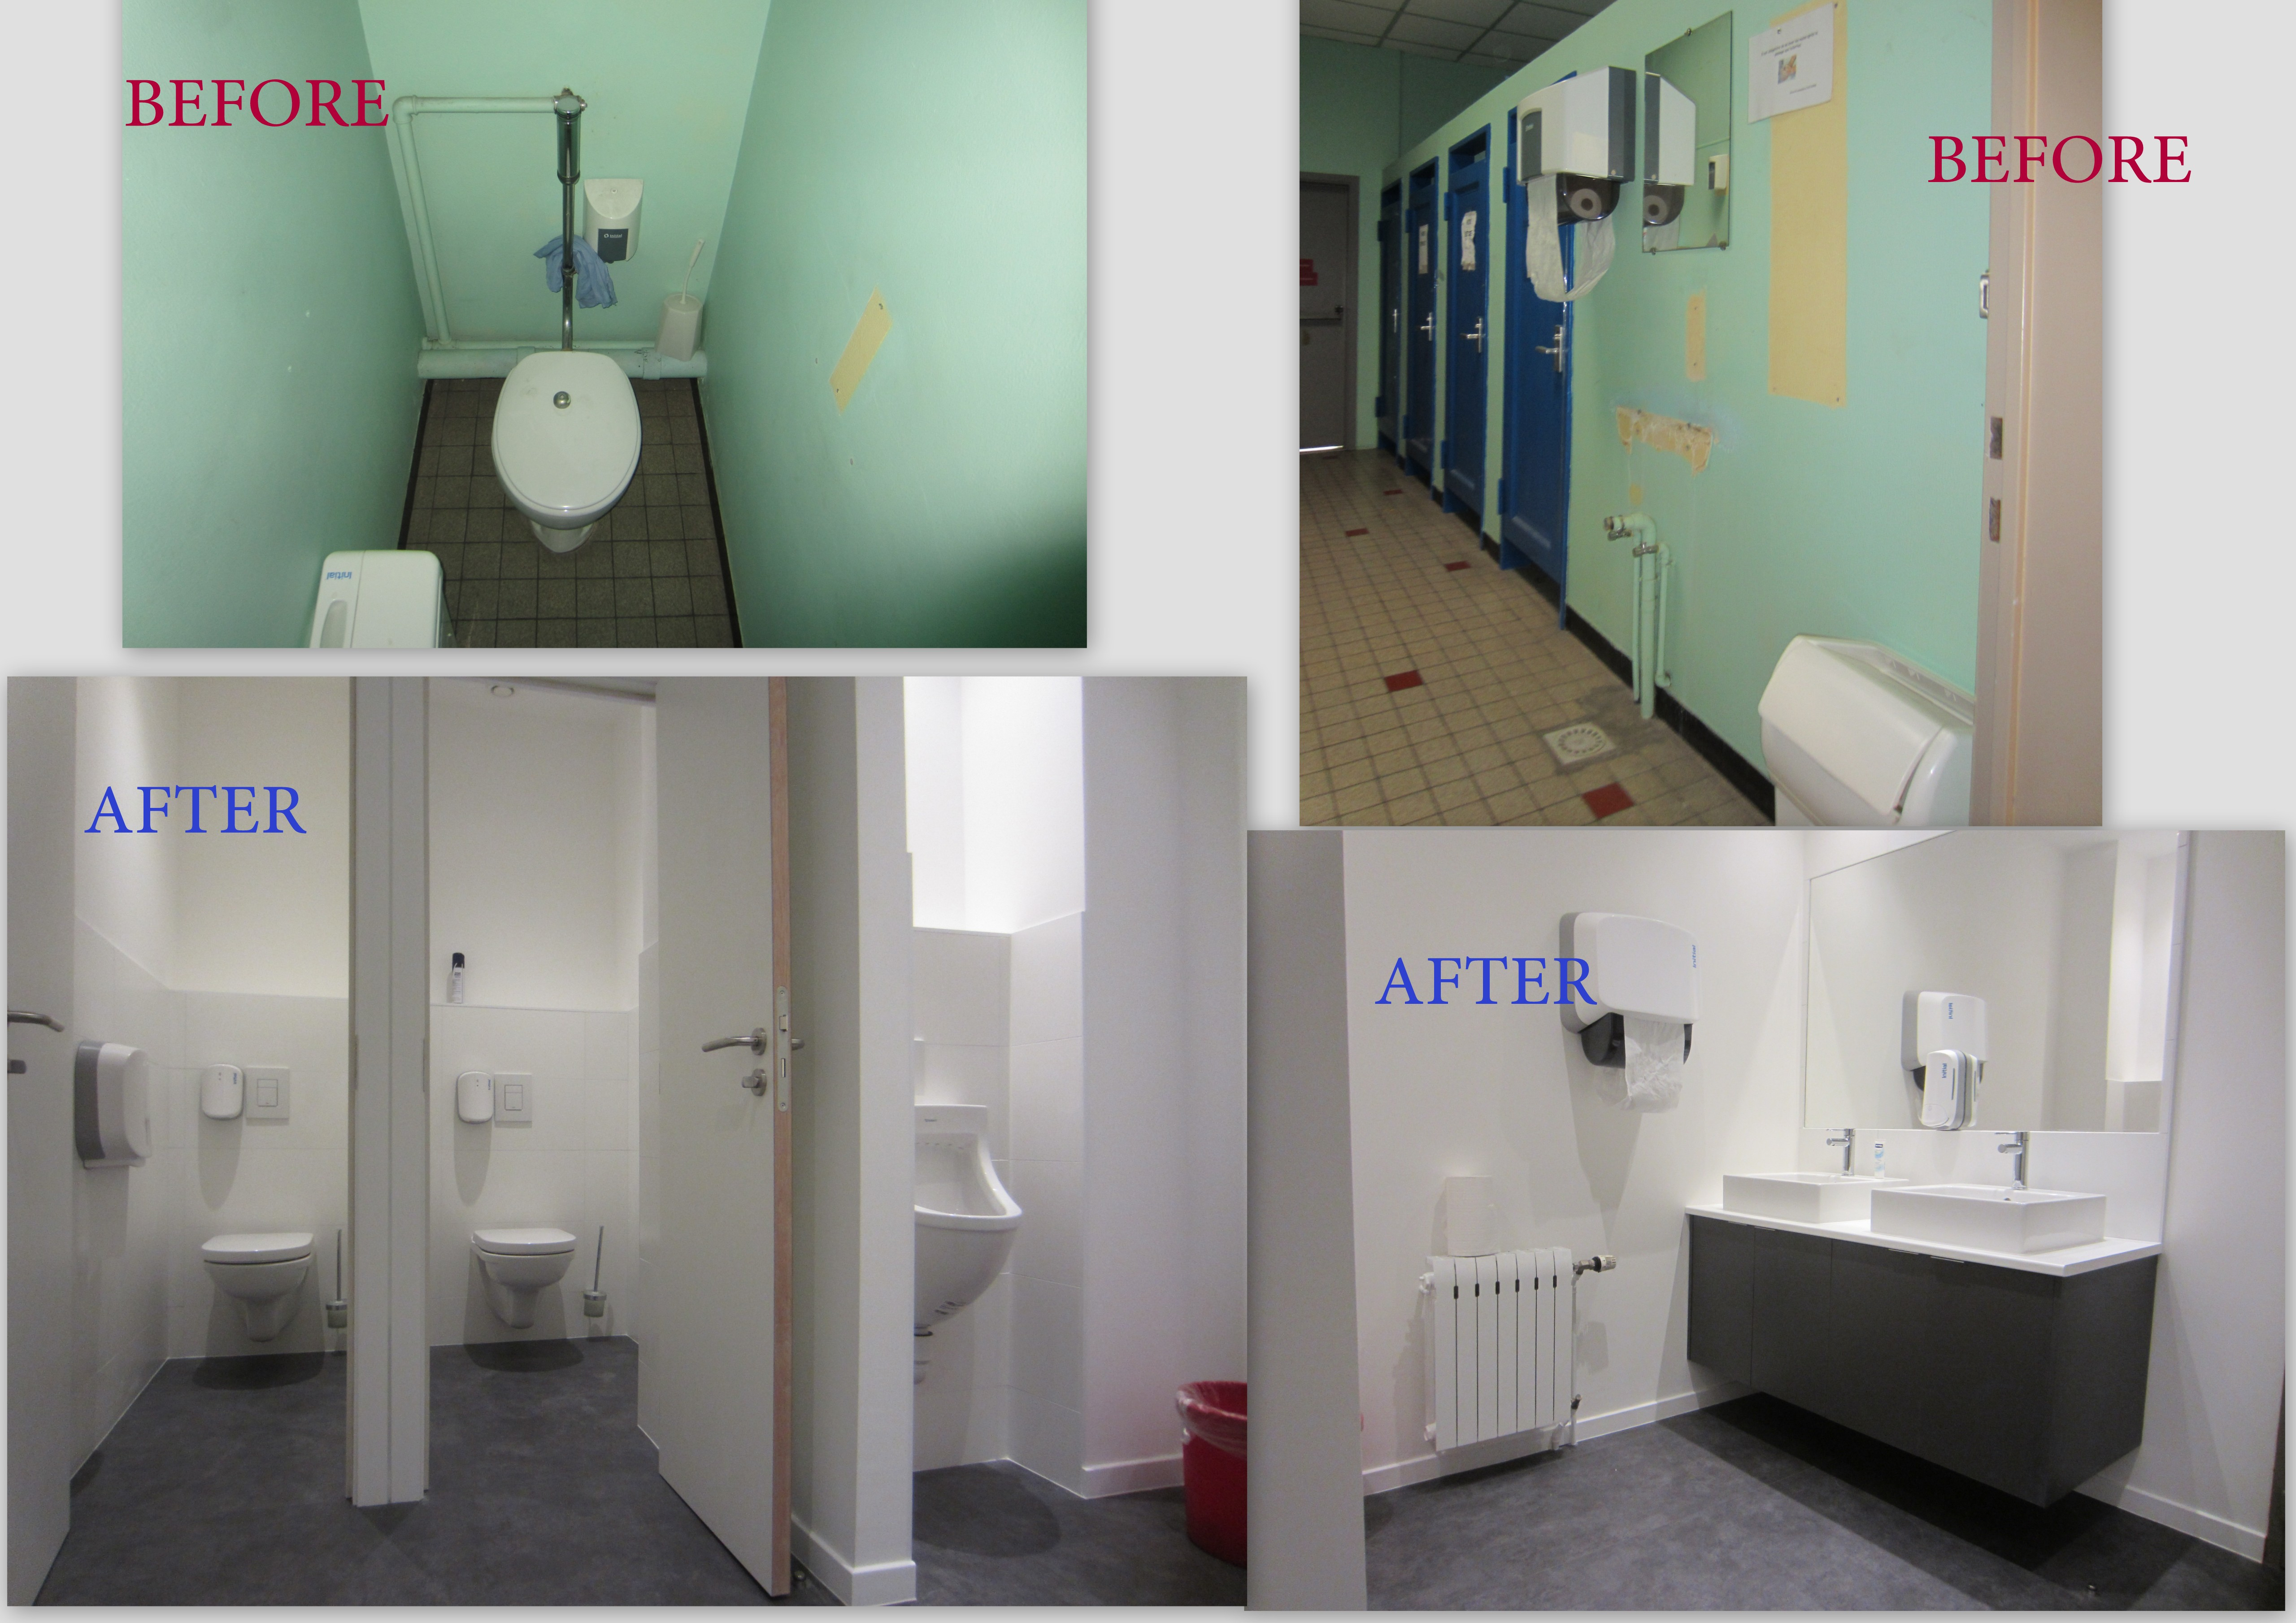 Modernization of sanitary spaces